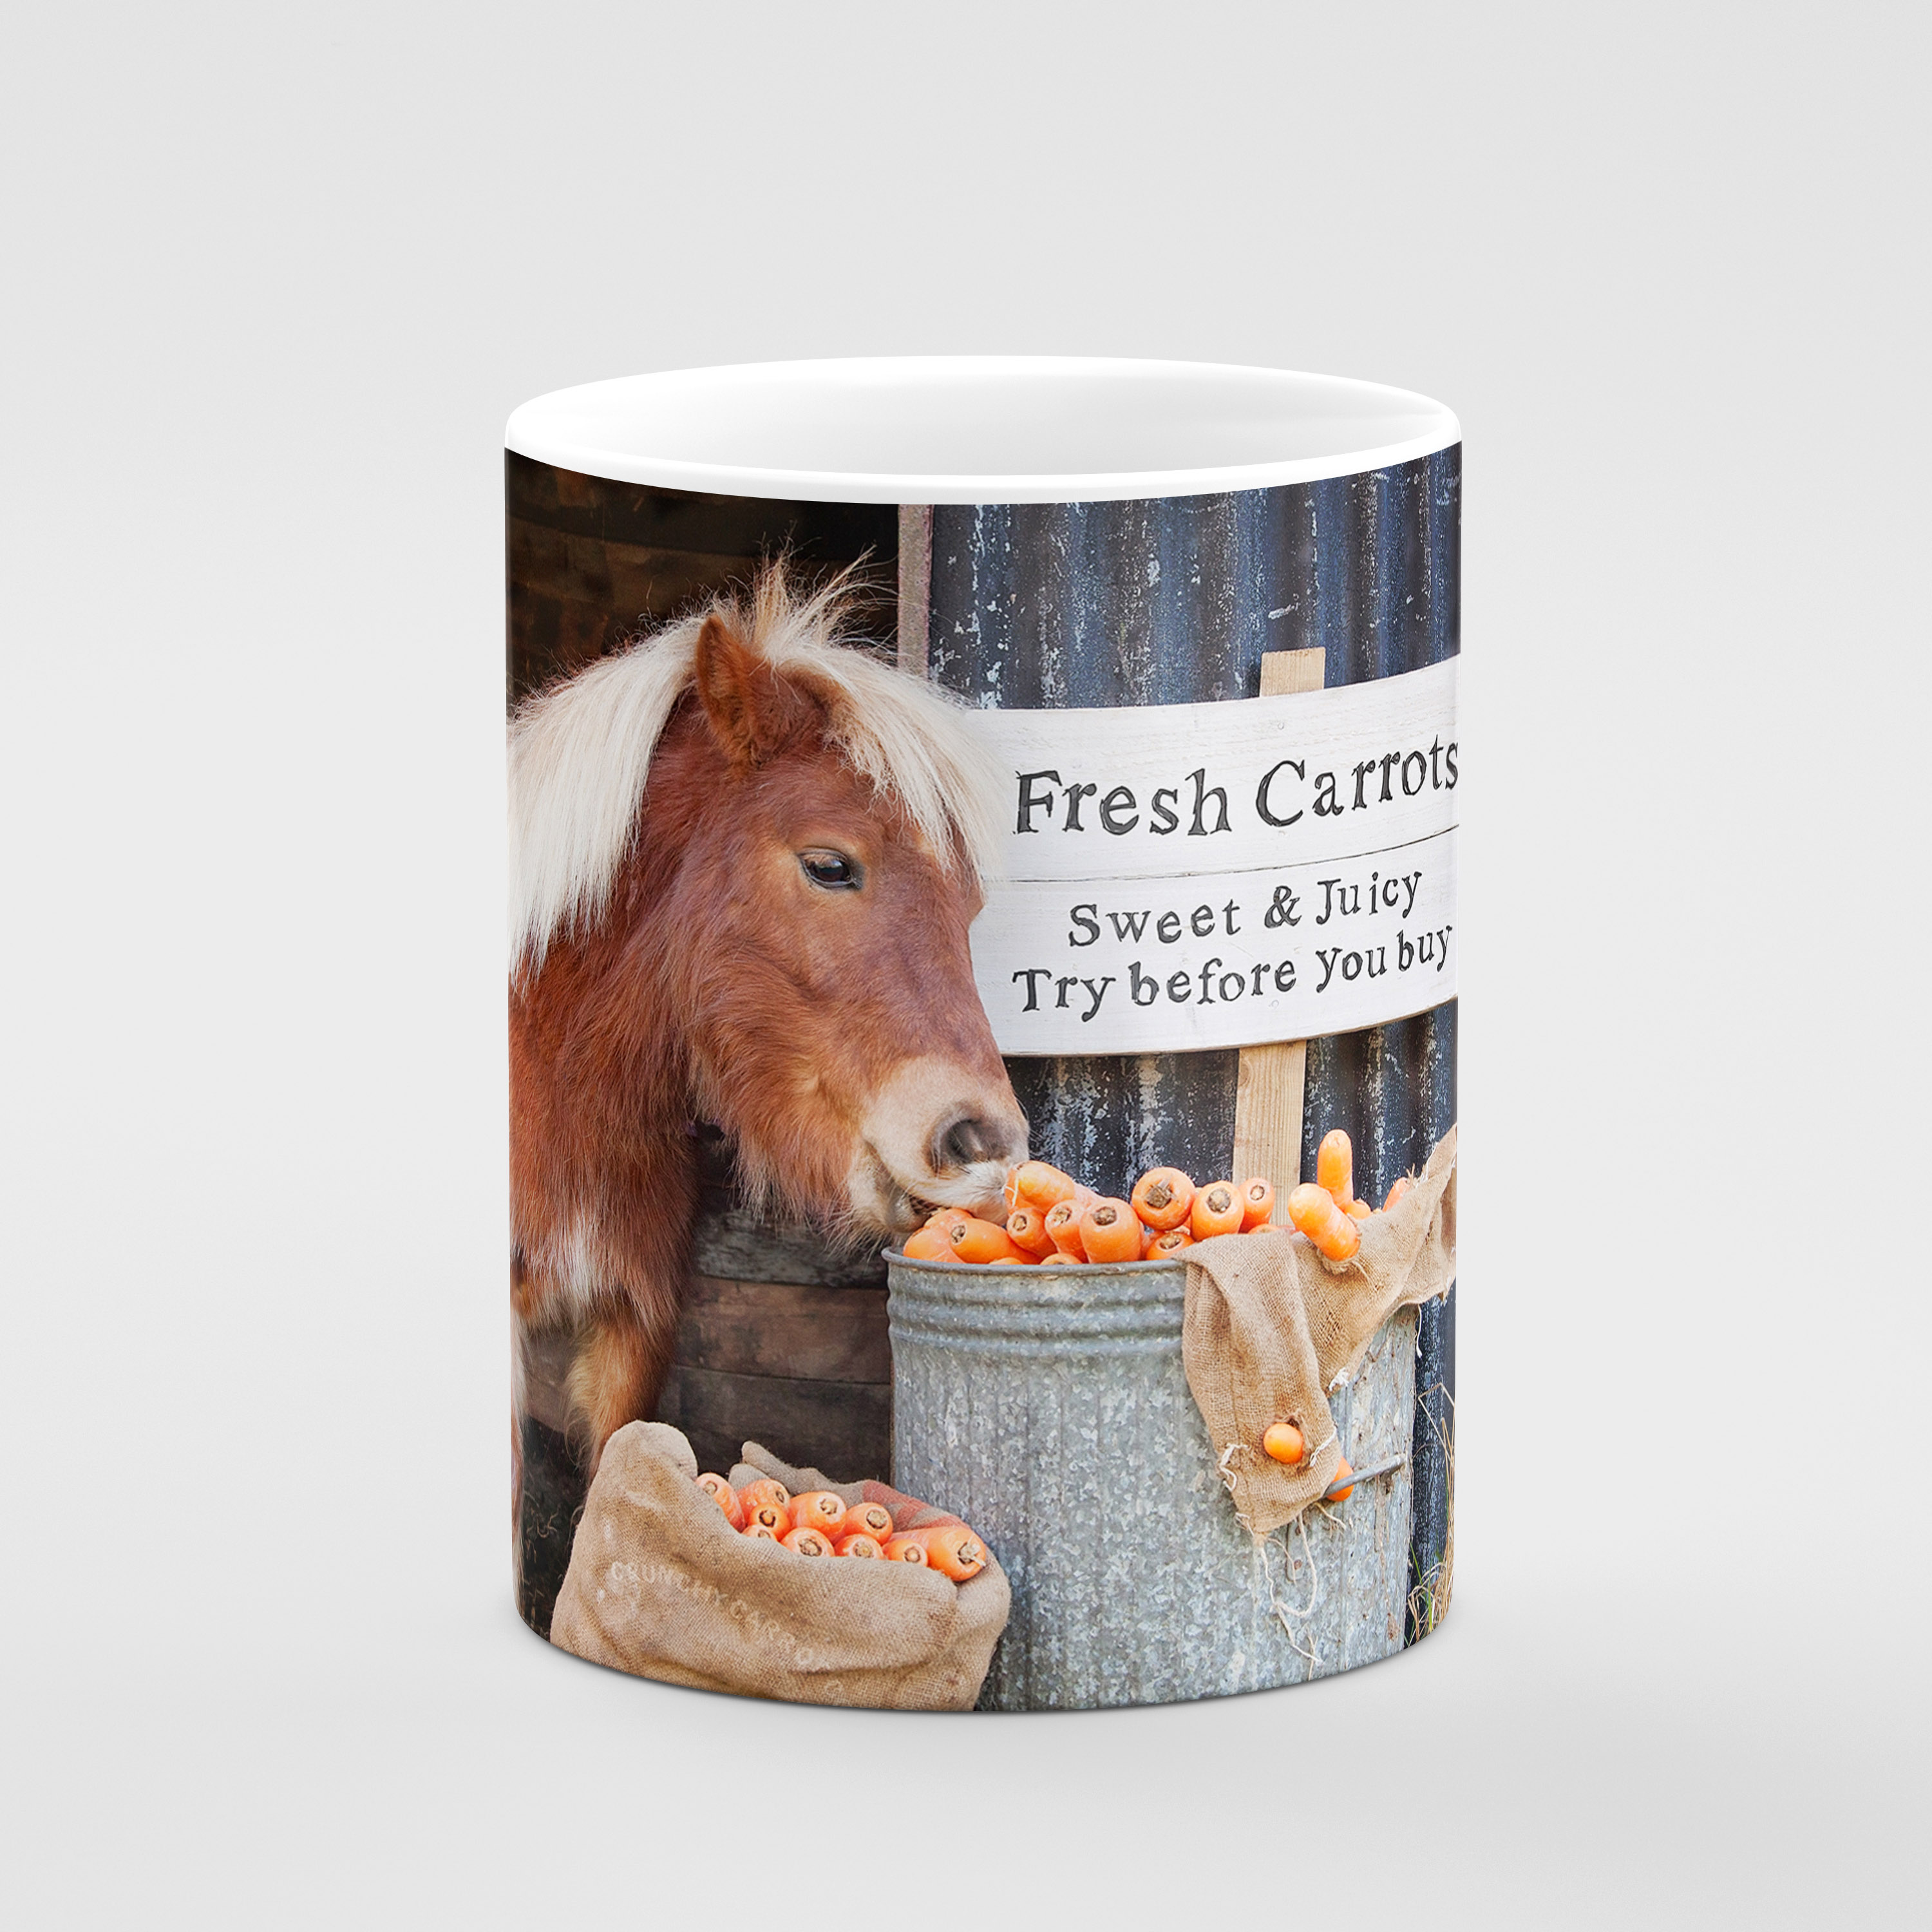 Shetland with his Fresh Carrots Glass Drinks Coaster - Kitchy & Co